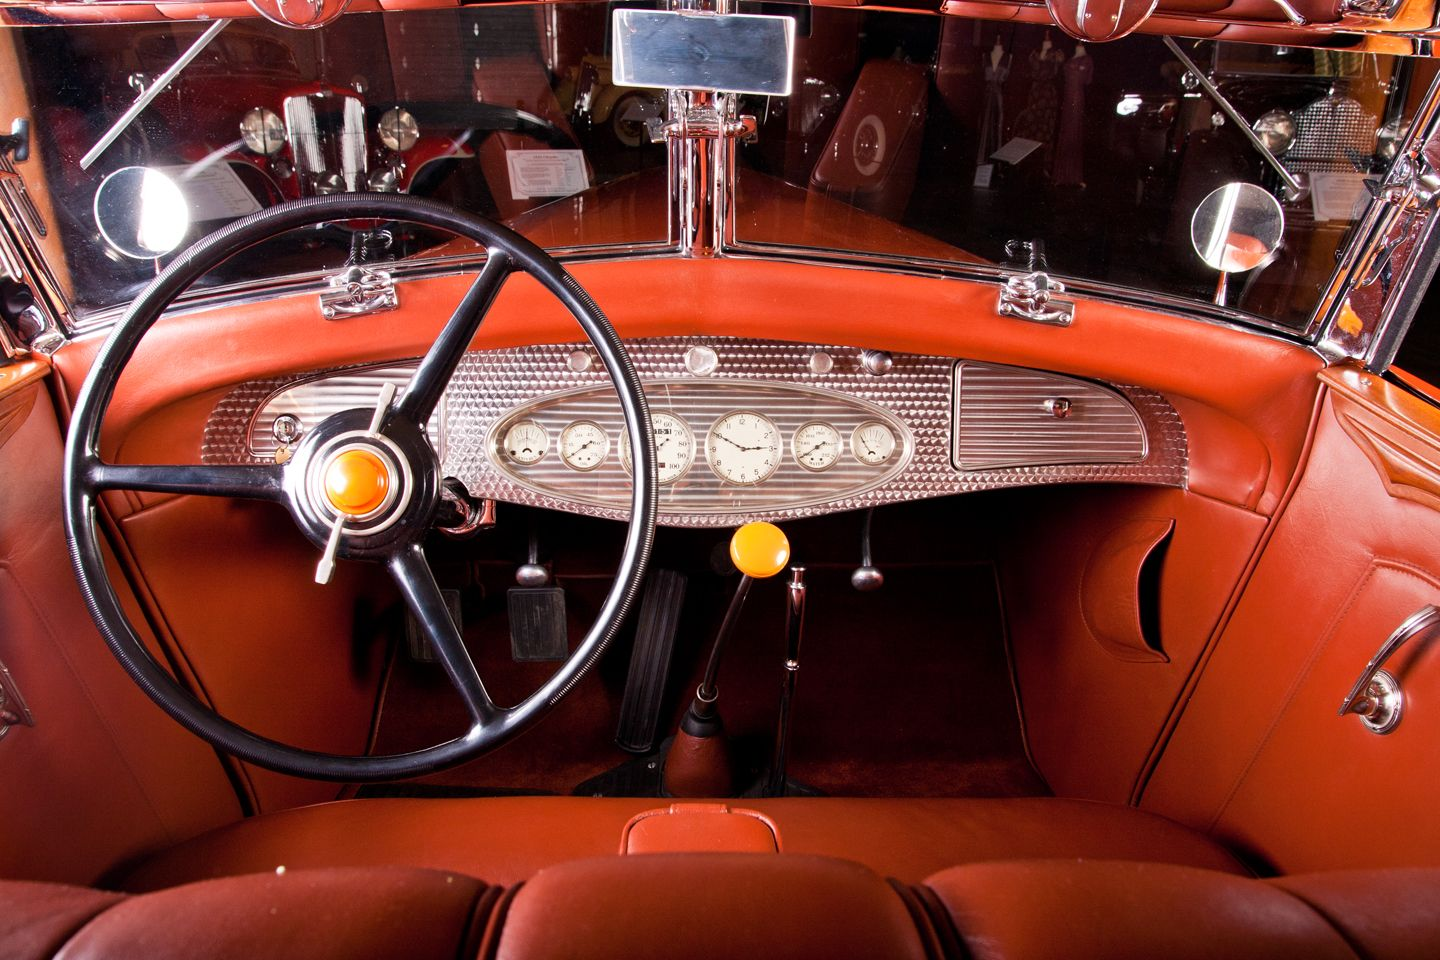 old car dashboards - Google Search | Dashboards | Pinterest | Cars